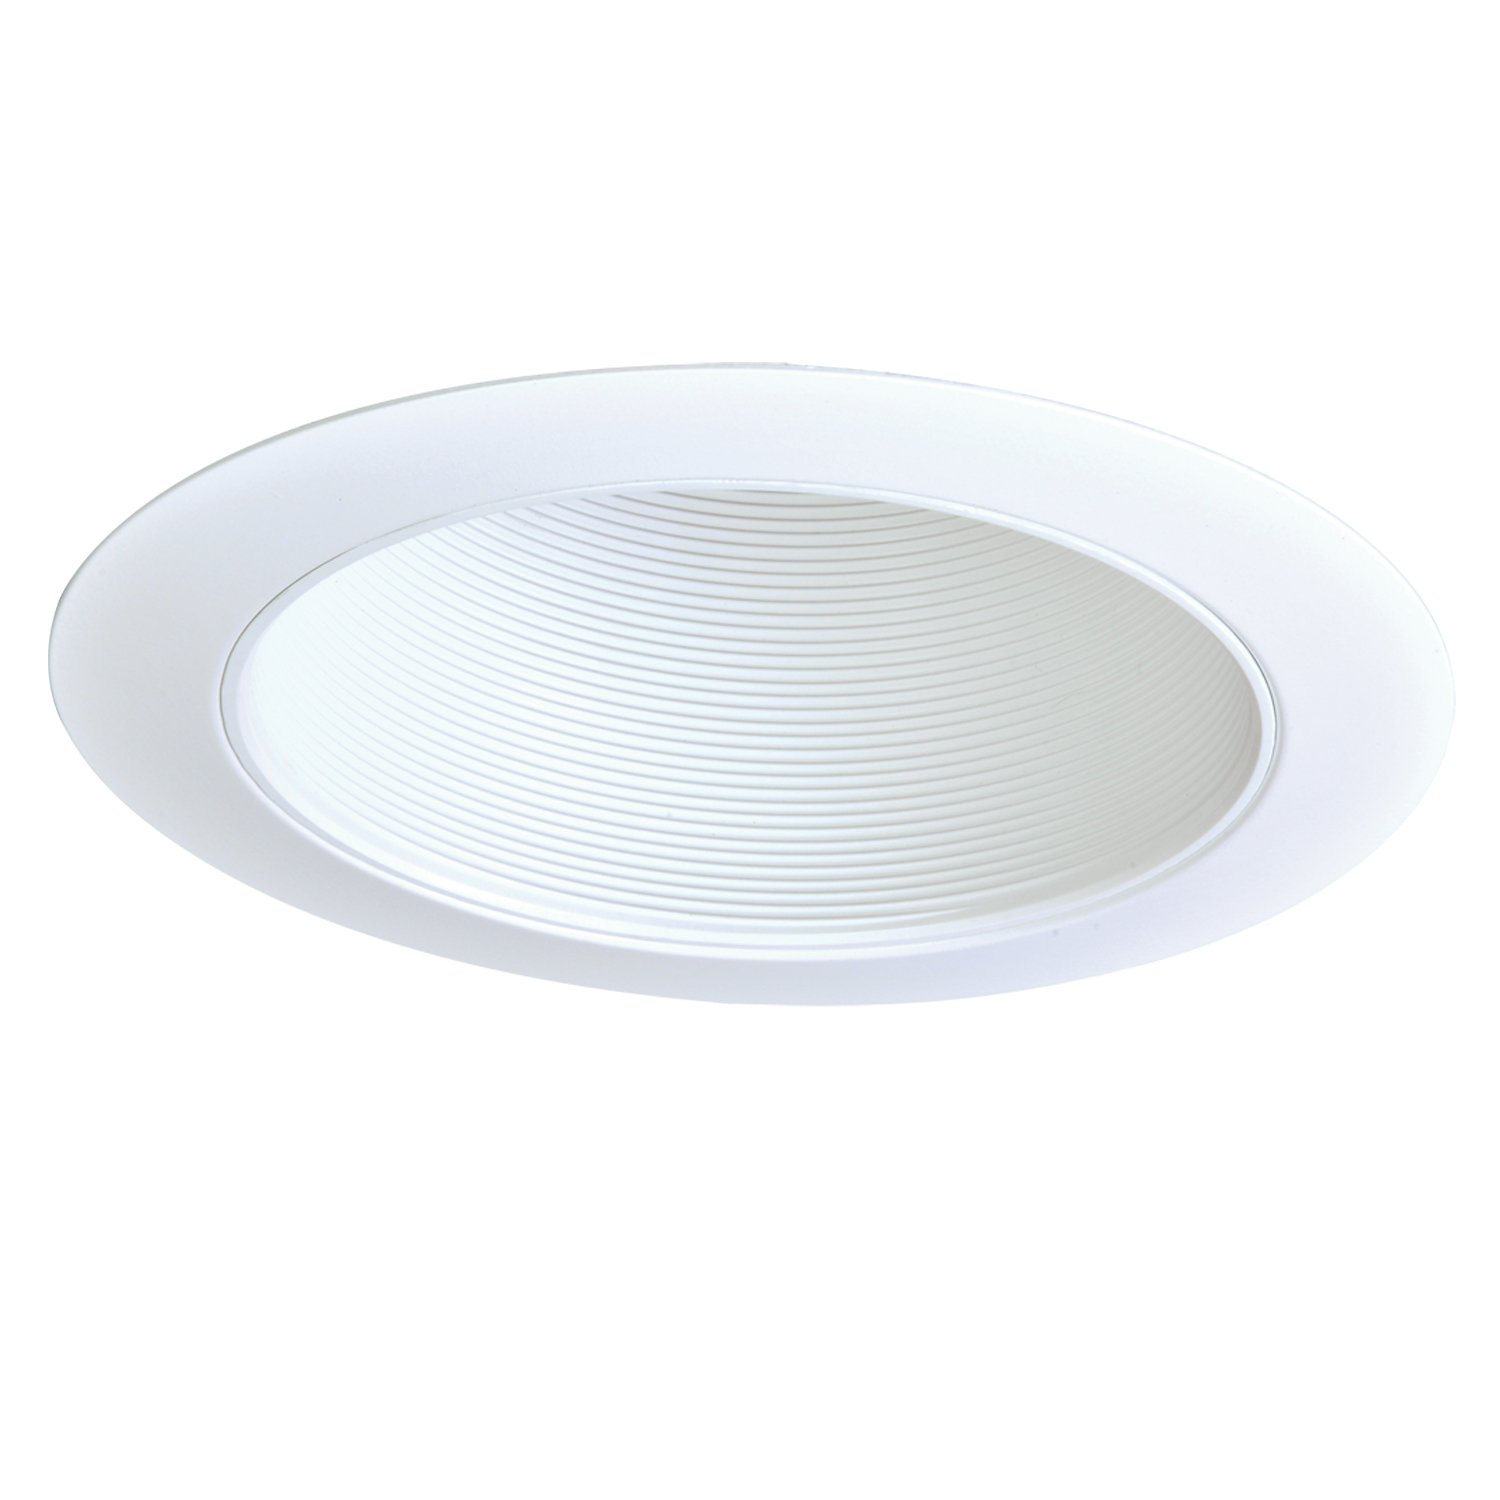 Amazon.com Halo Recessed 310WG 6-Inch Coilex Oversize Trim Ring with Baffle White Home Improvement  sc 1 st  Amazon.com & Amazon.com: Halo Recessed 310WG 6-Inch Coilex Oversize Trim Ring ...